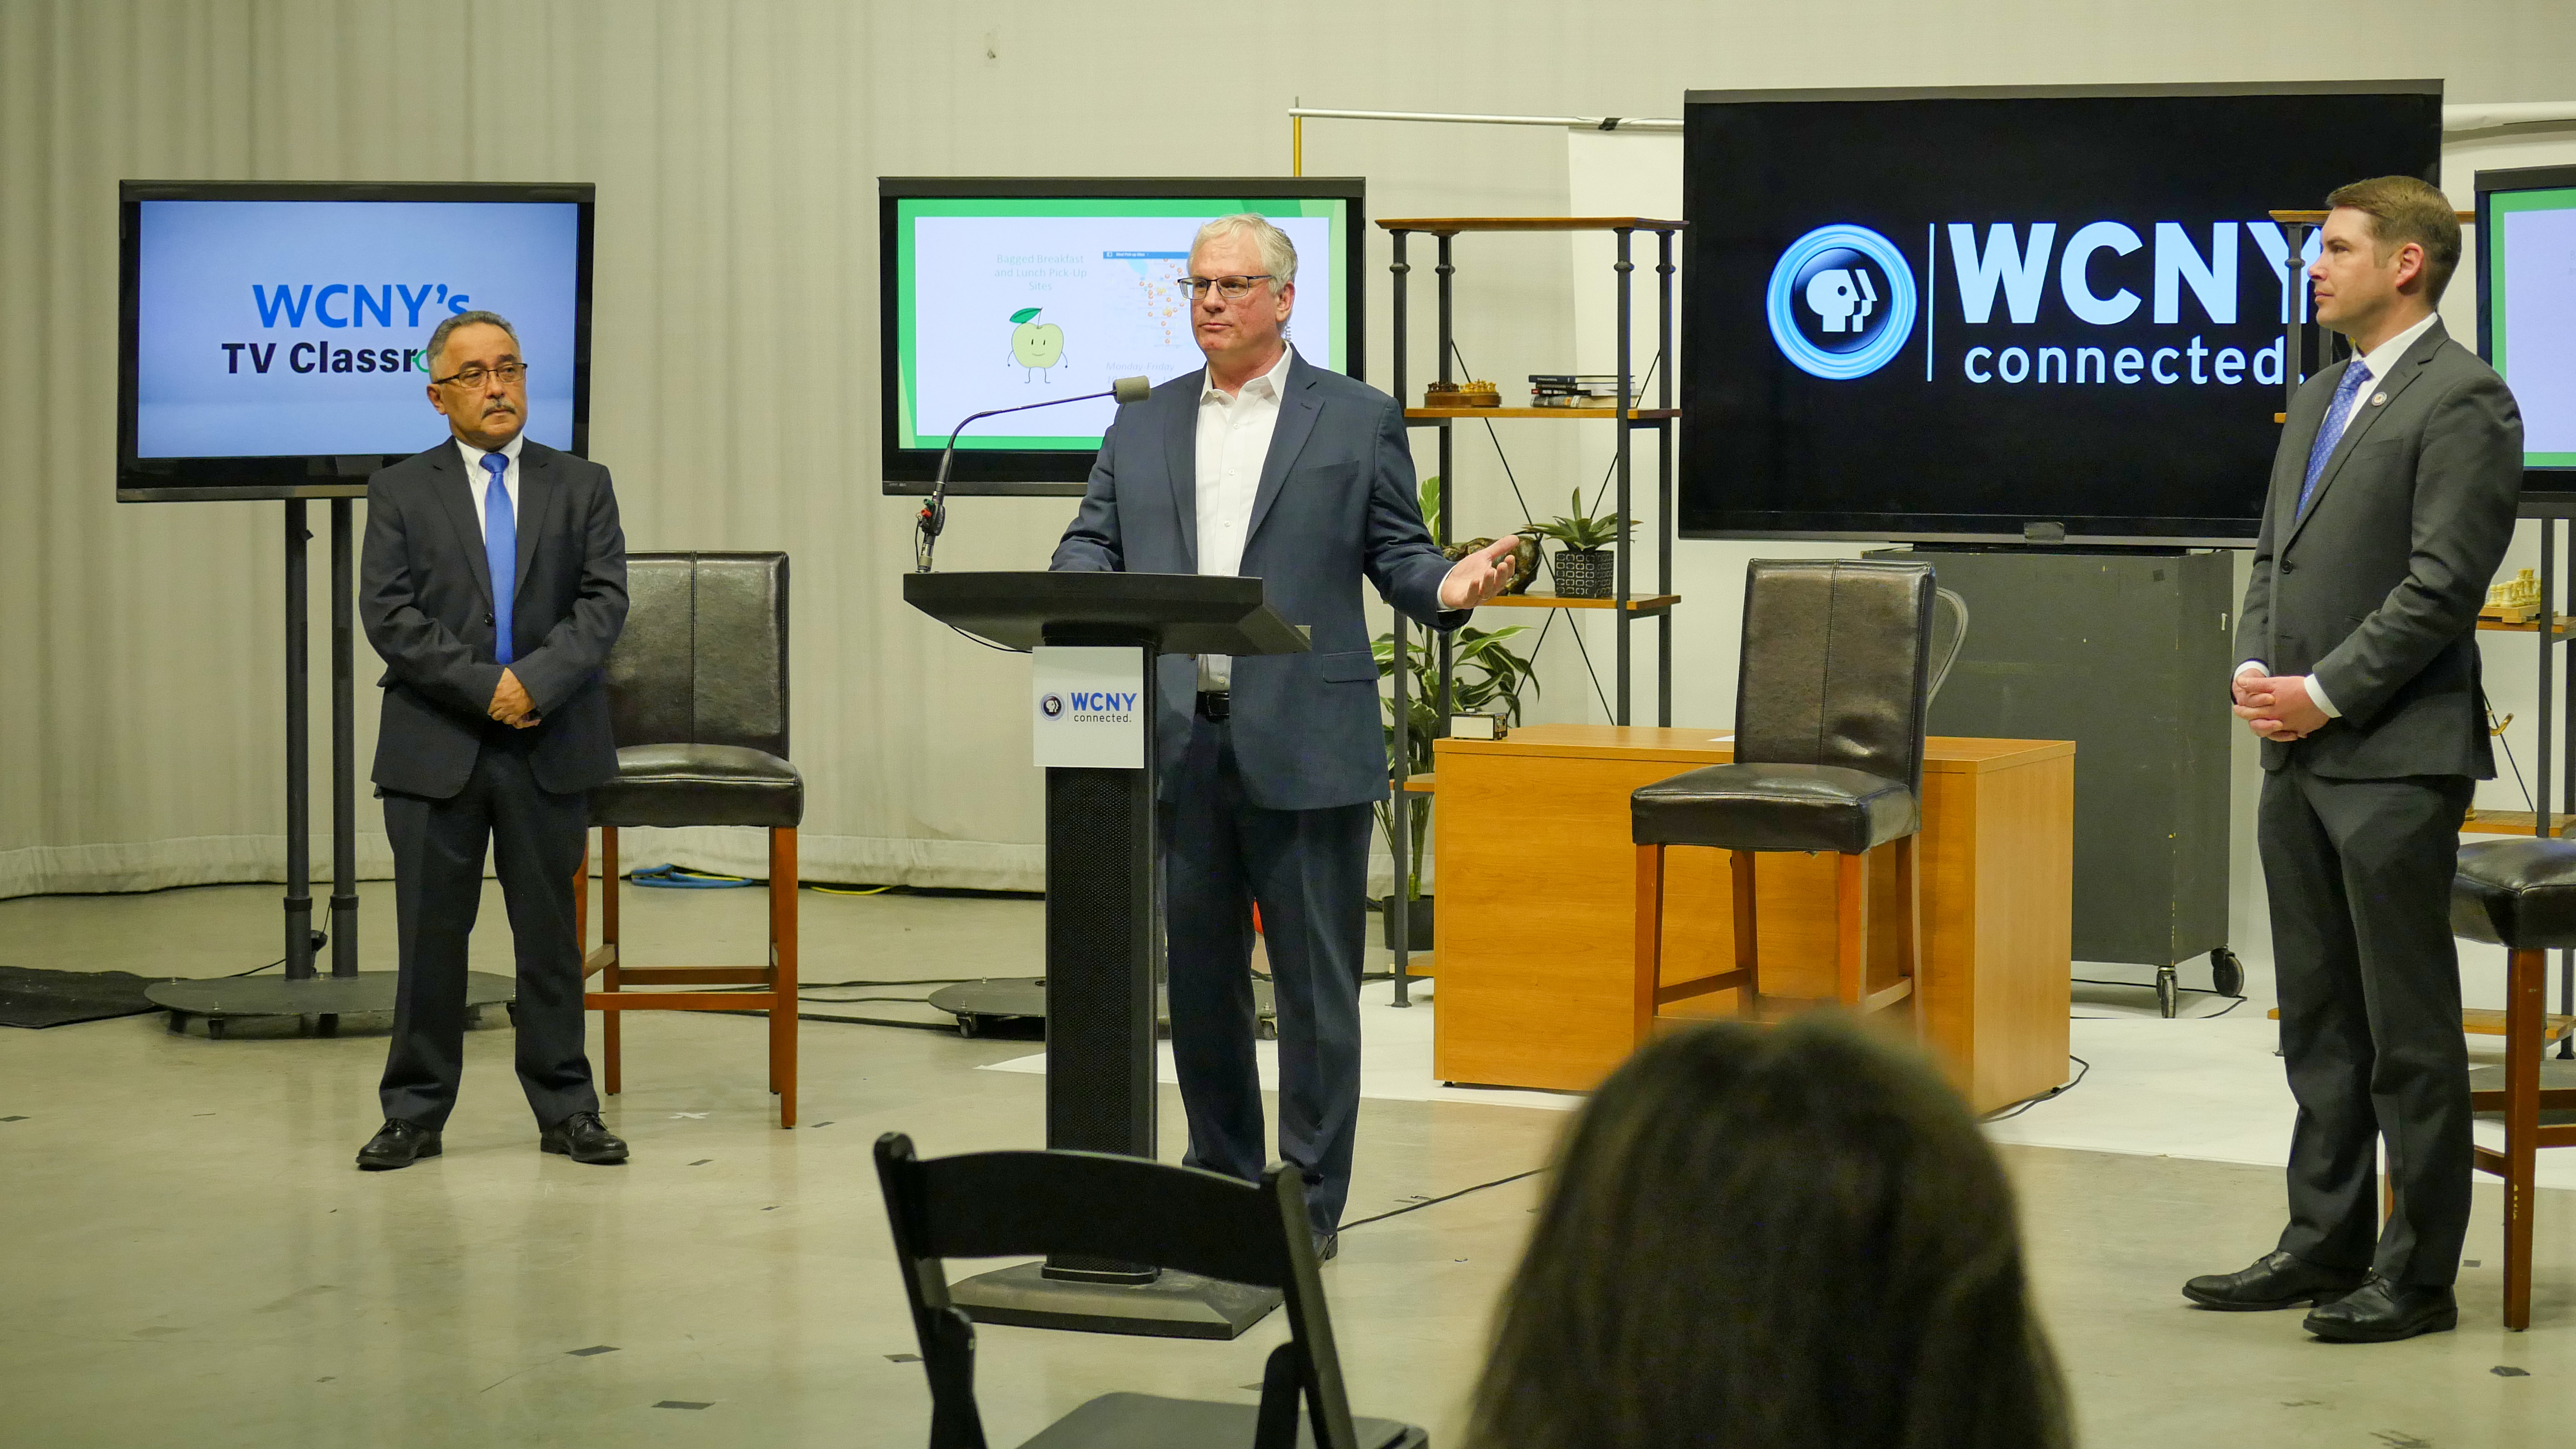 WCNY'sTVClassroom_From left - Alicea, Gelman, Walsh